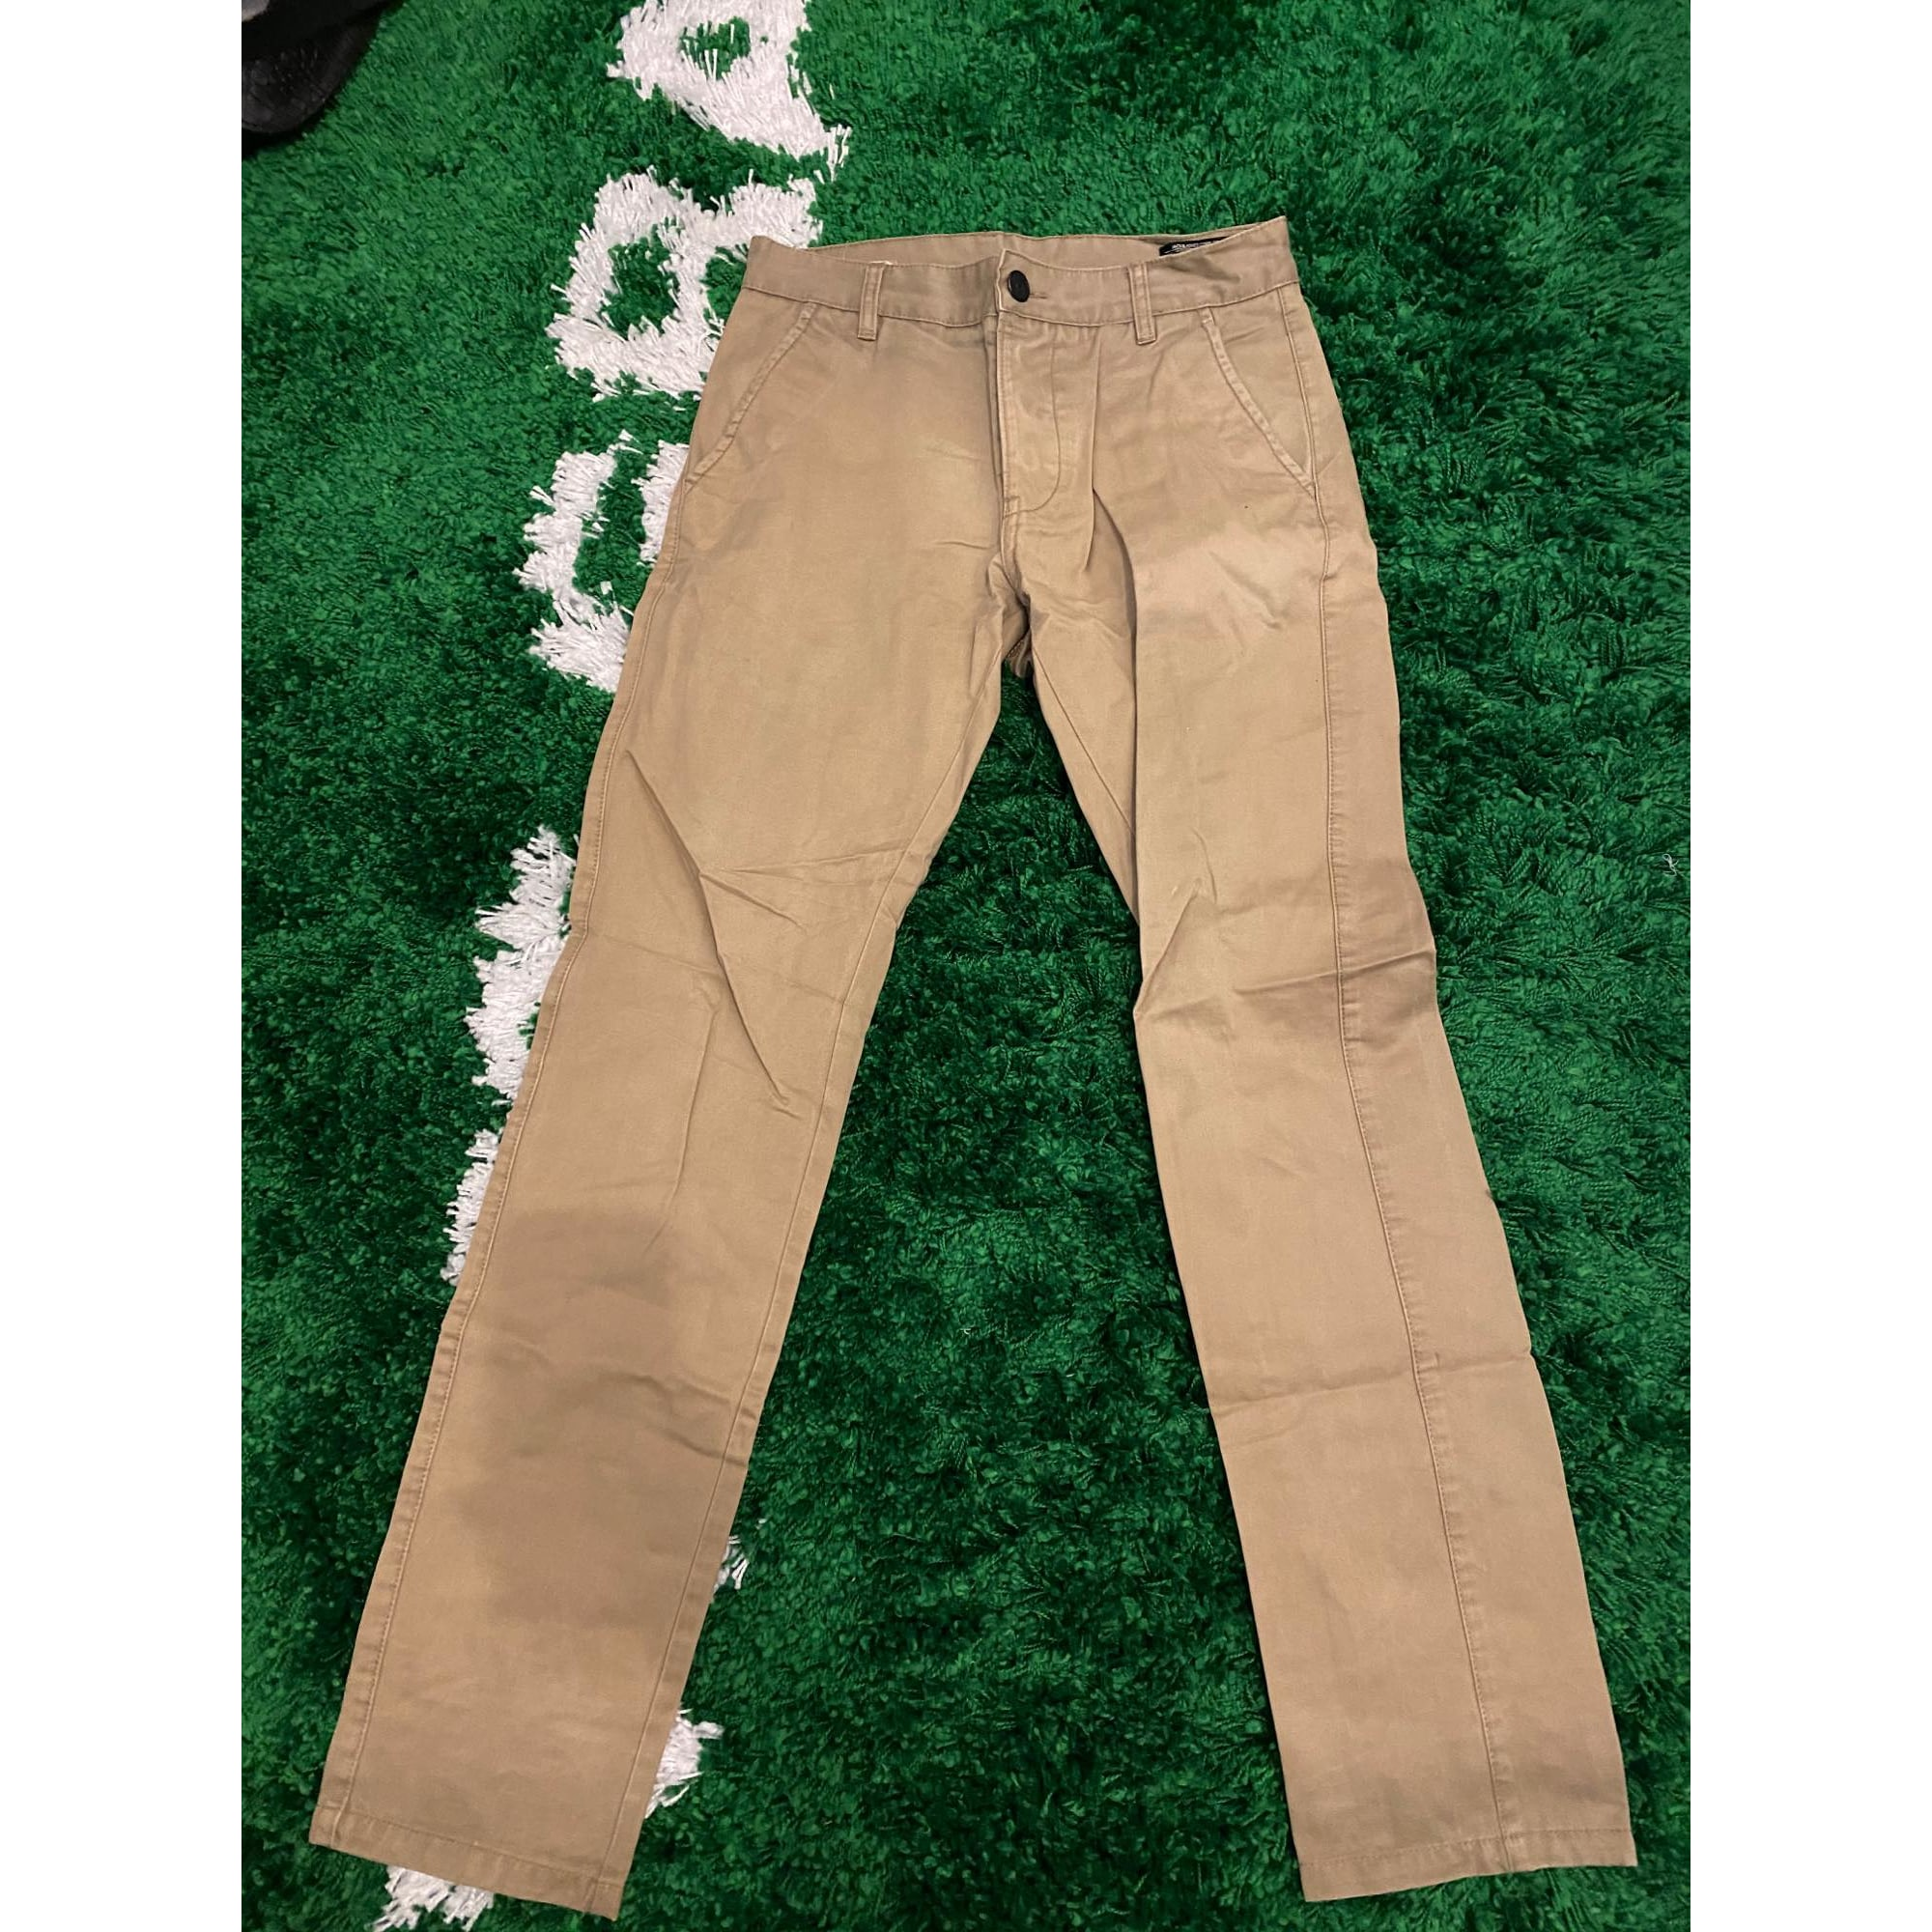 Pantalon slim JACK & JONES Beige, camel